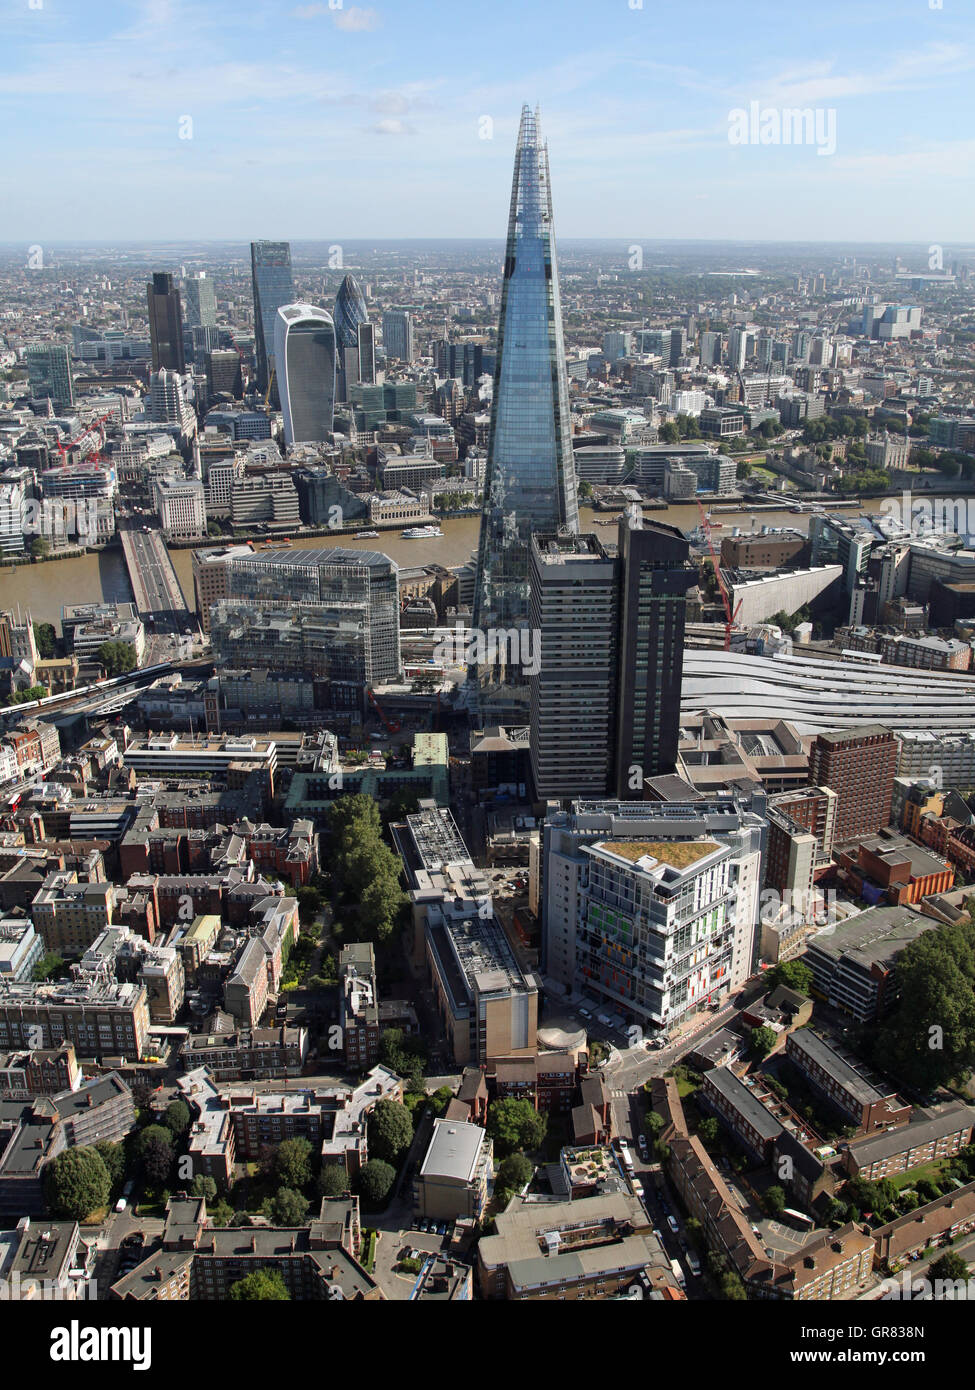 Vue aérienne de gars à l'hôpital, SE1, le Shard, Tamise et la ville, London, UK Photo Stock